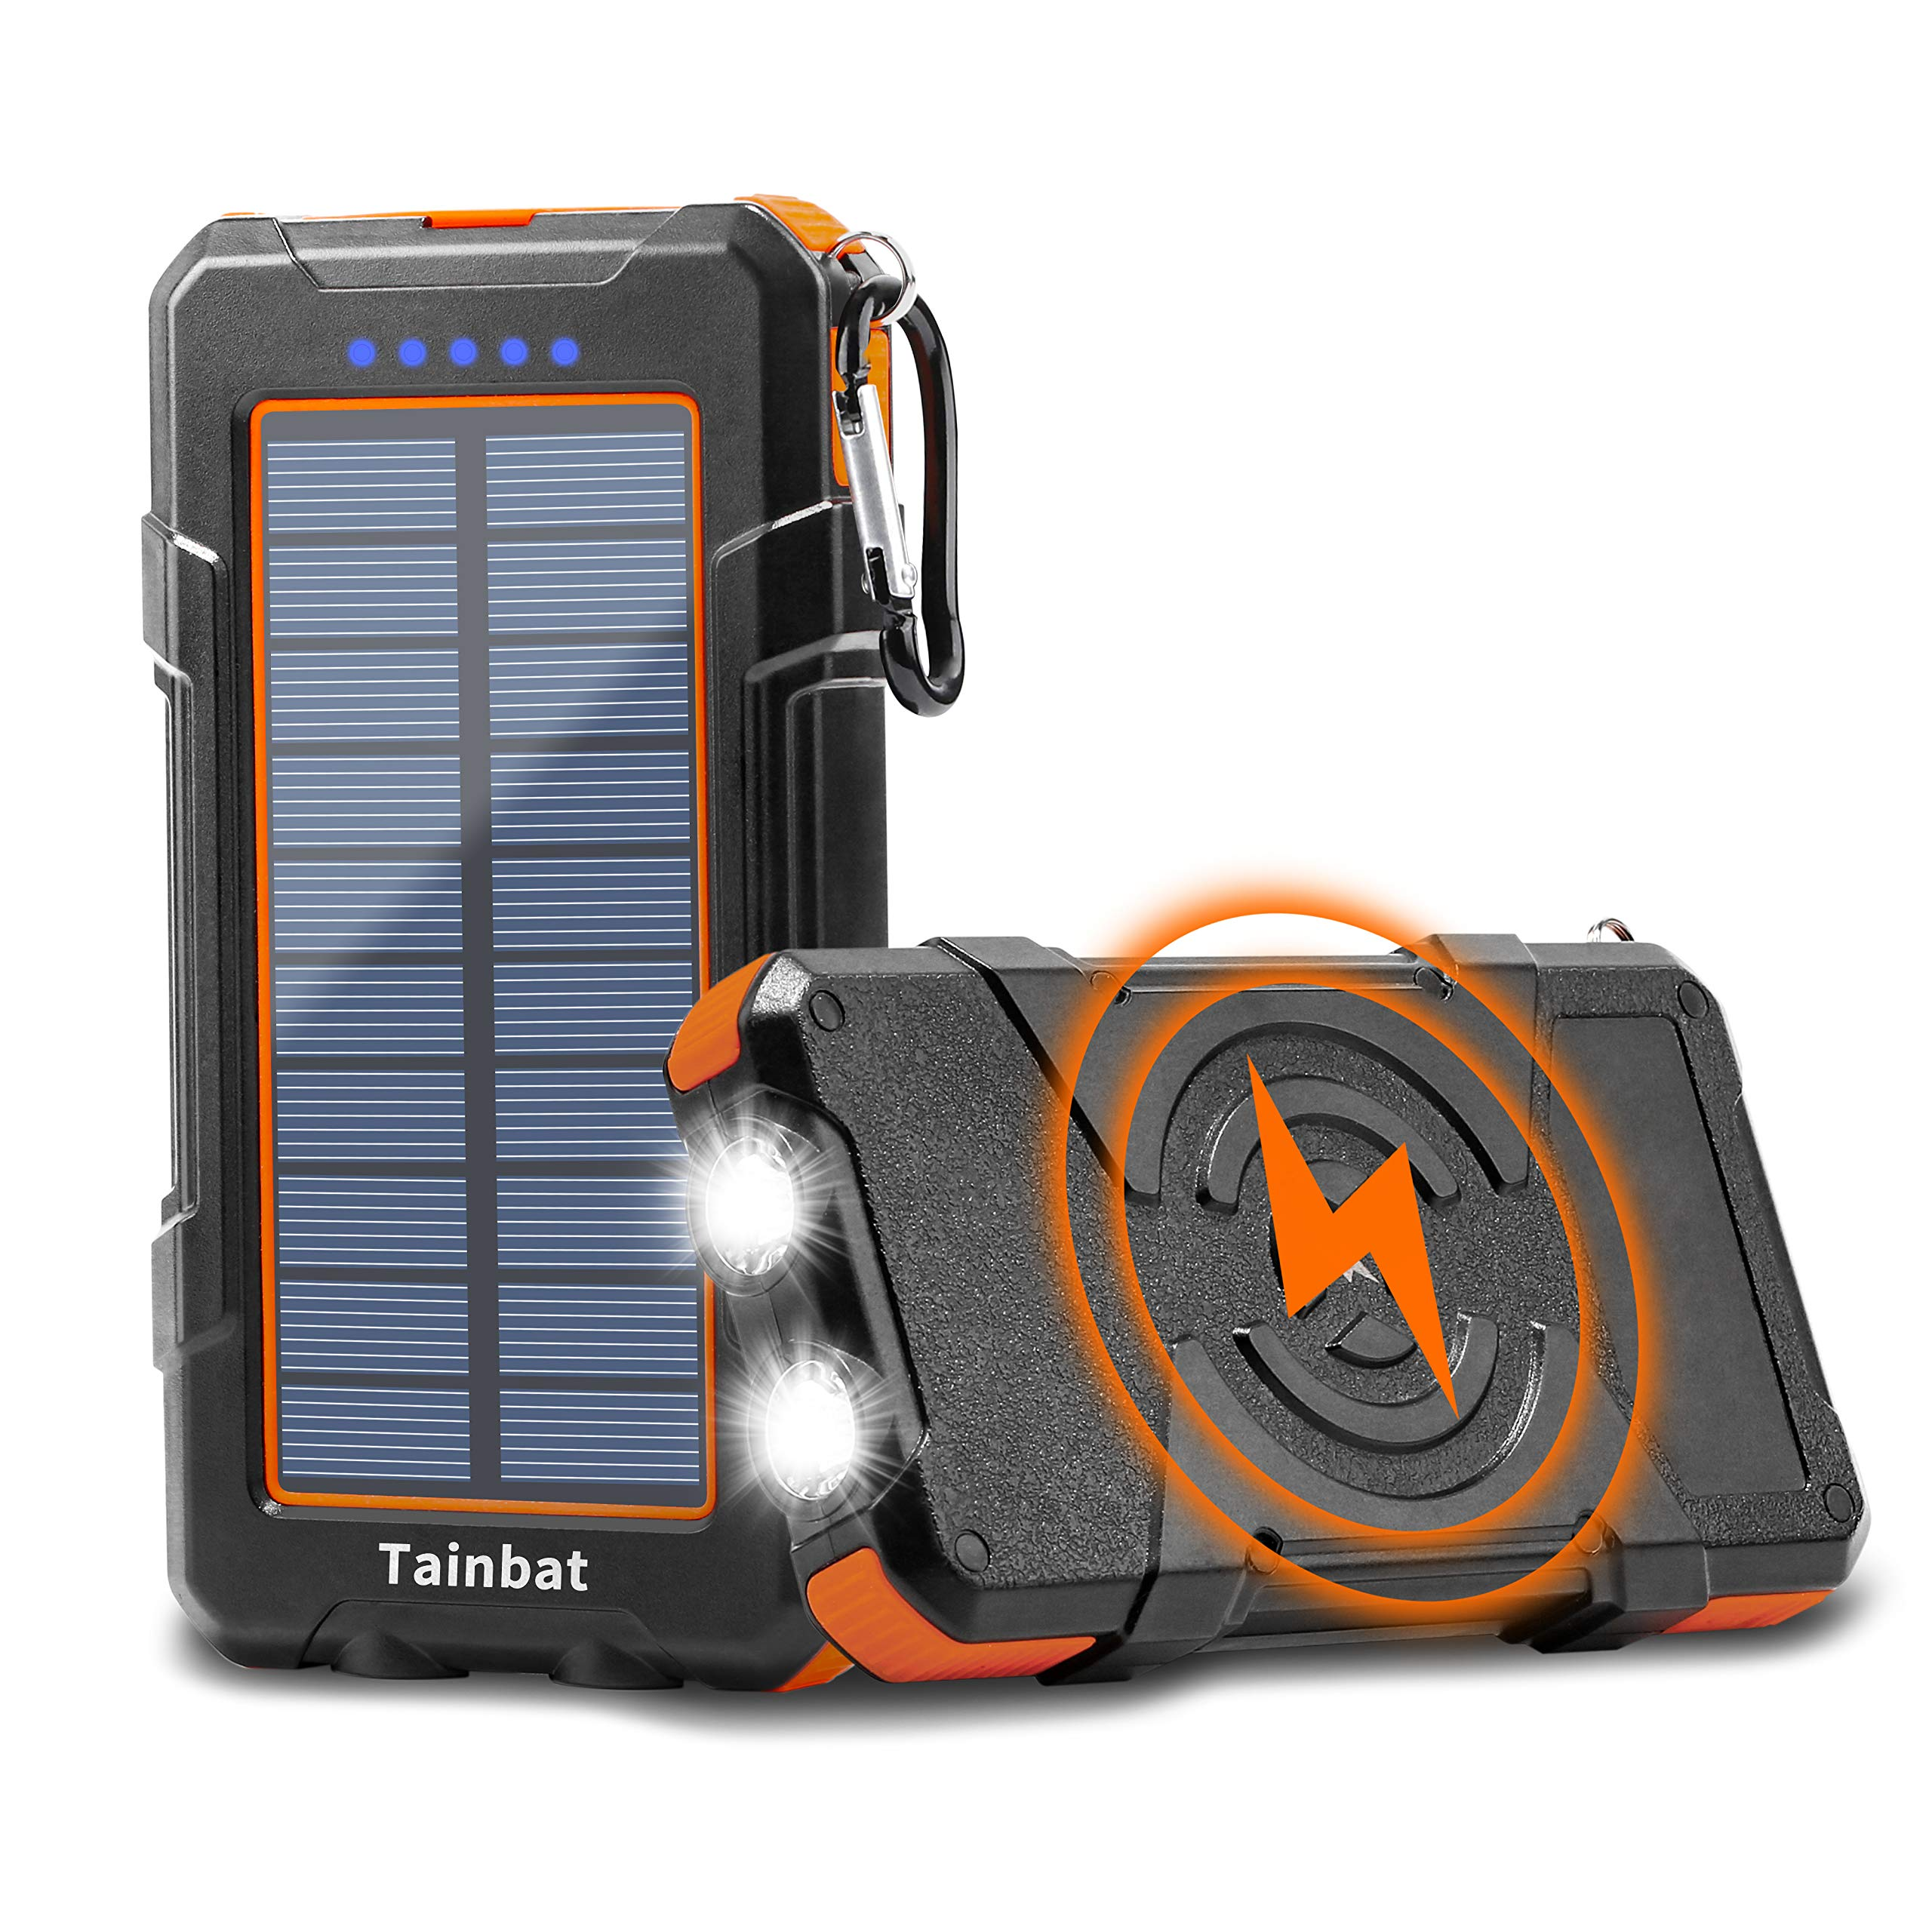 Solar Charger Power Bank, Qi Wireless Solar Phone Charger 10000mAh with Dual USB Output Micro Type C Input Dual Flashlight, Portable External Battery Pack for Camping Outdoor iOS & Android